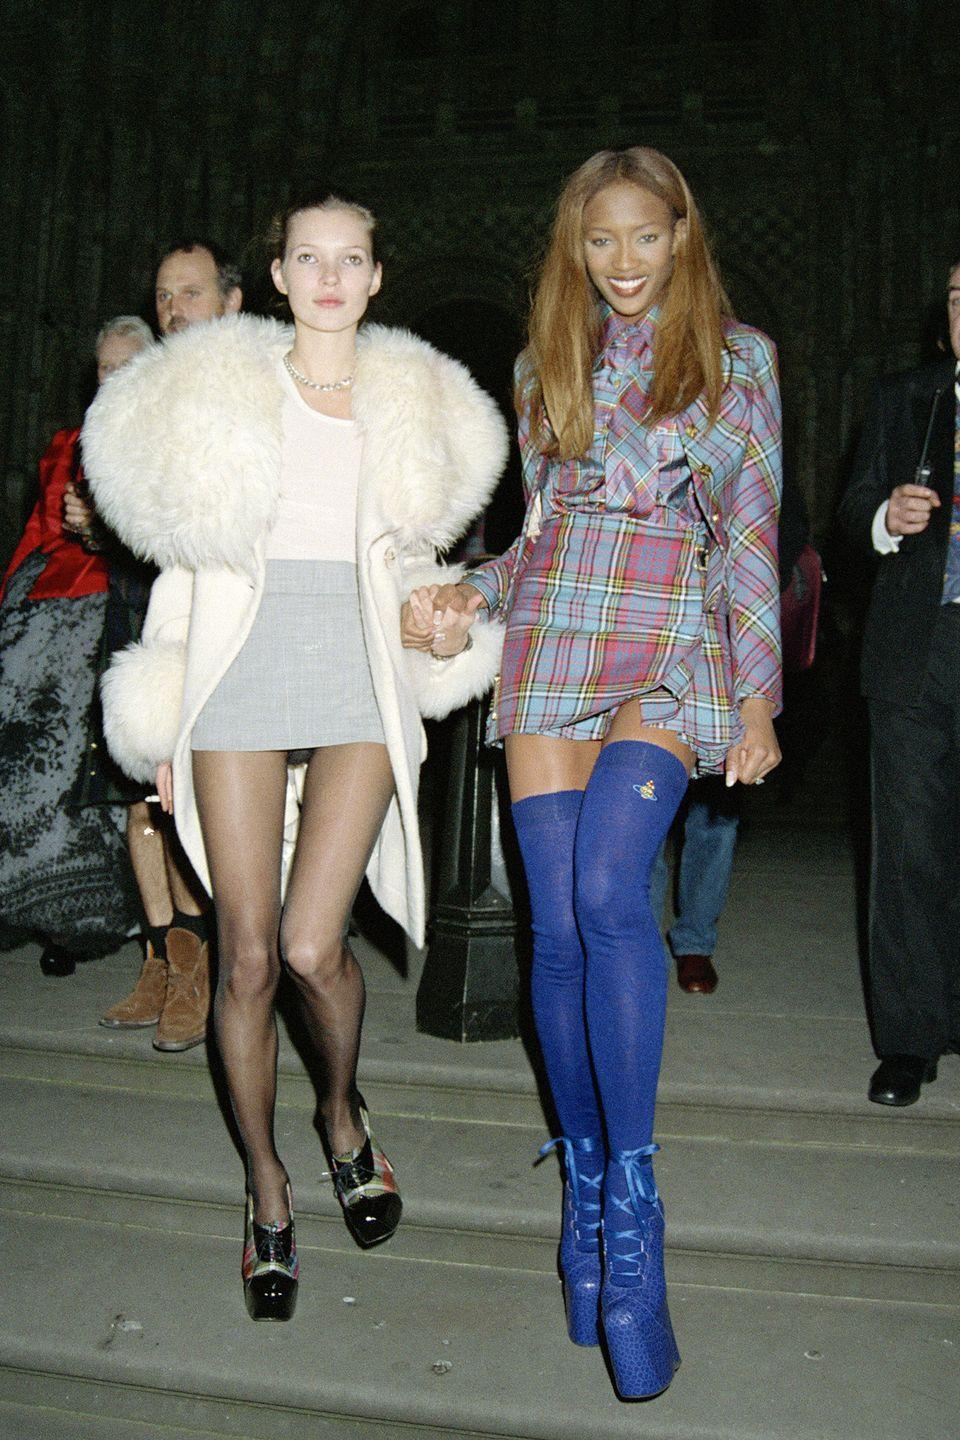 <p>Supermodel BFFs Kate Moss and Naomi Campbell had so many iconic looks in the '90s, but we'll never forget when Campbell stepped out in these bright blue platform boots by Vivienne Westwood. </p>